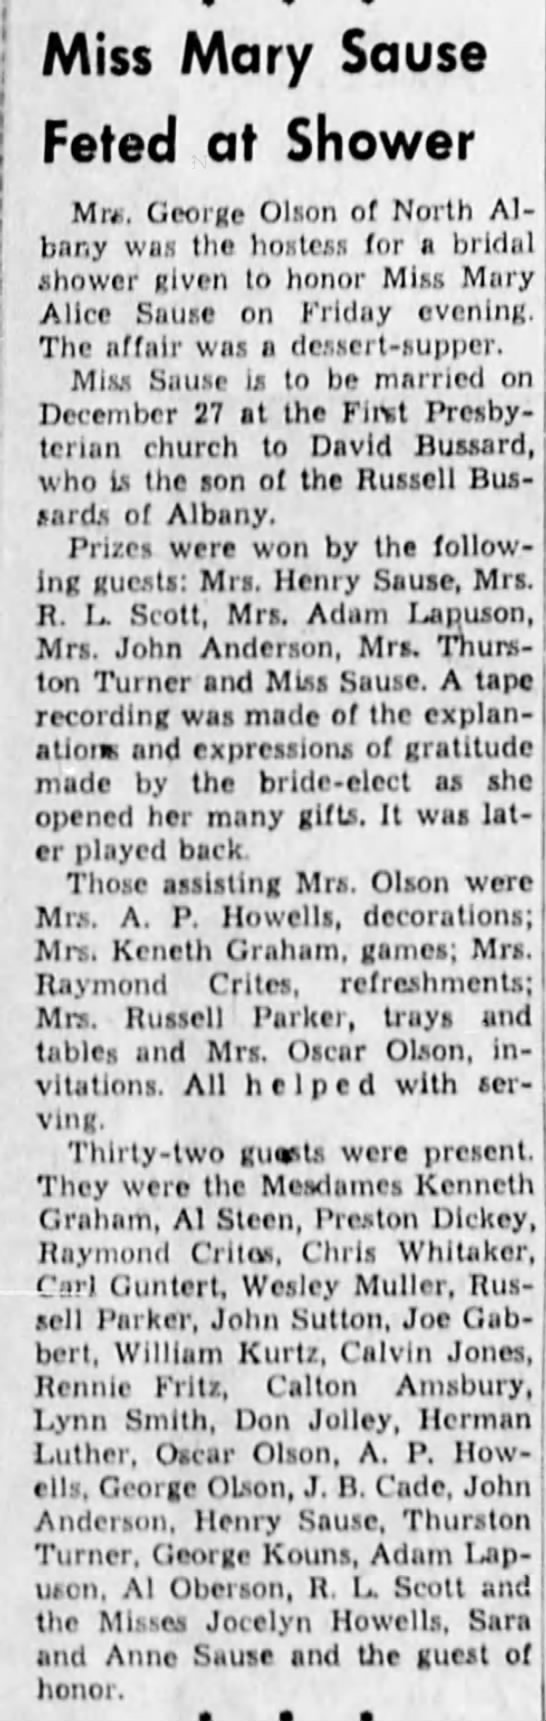 1952-12-6 Shower for Mary Alice Sause - Miss Mary Sause Feted at Shower Mr. George...